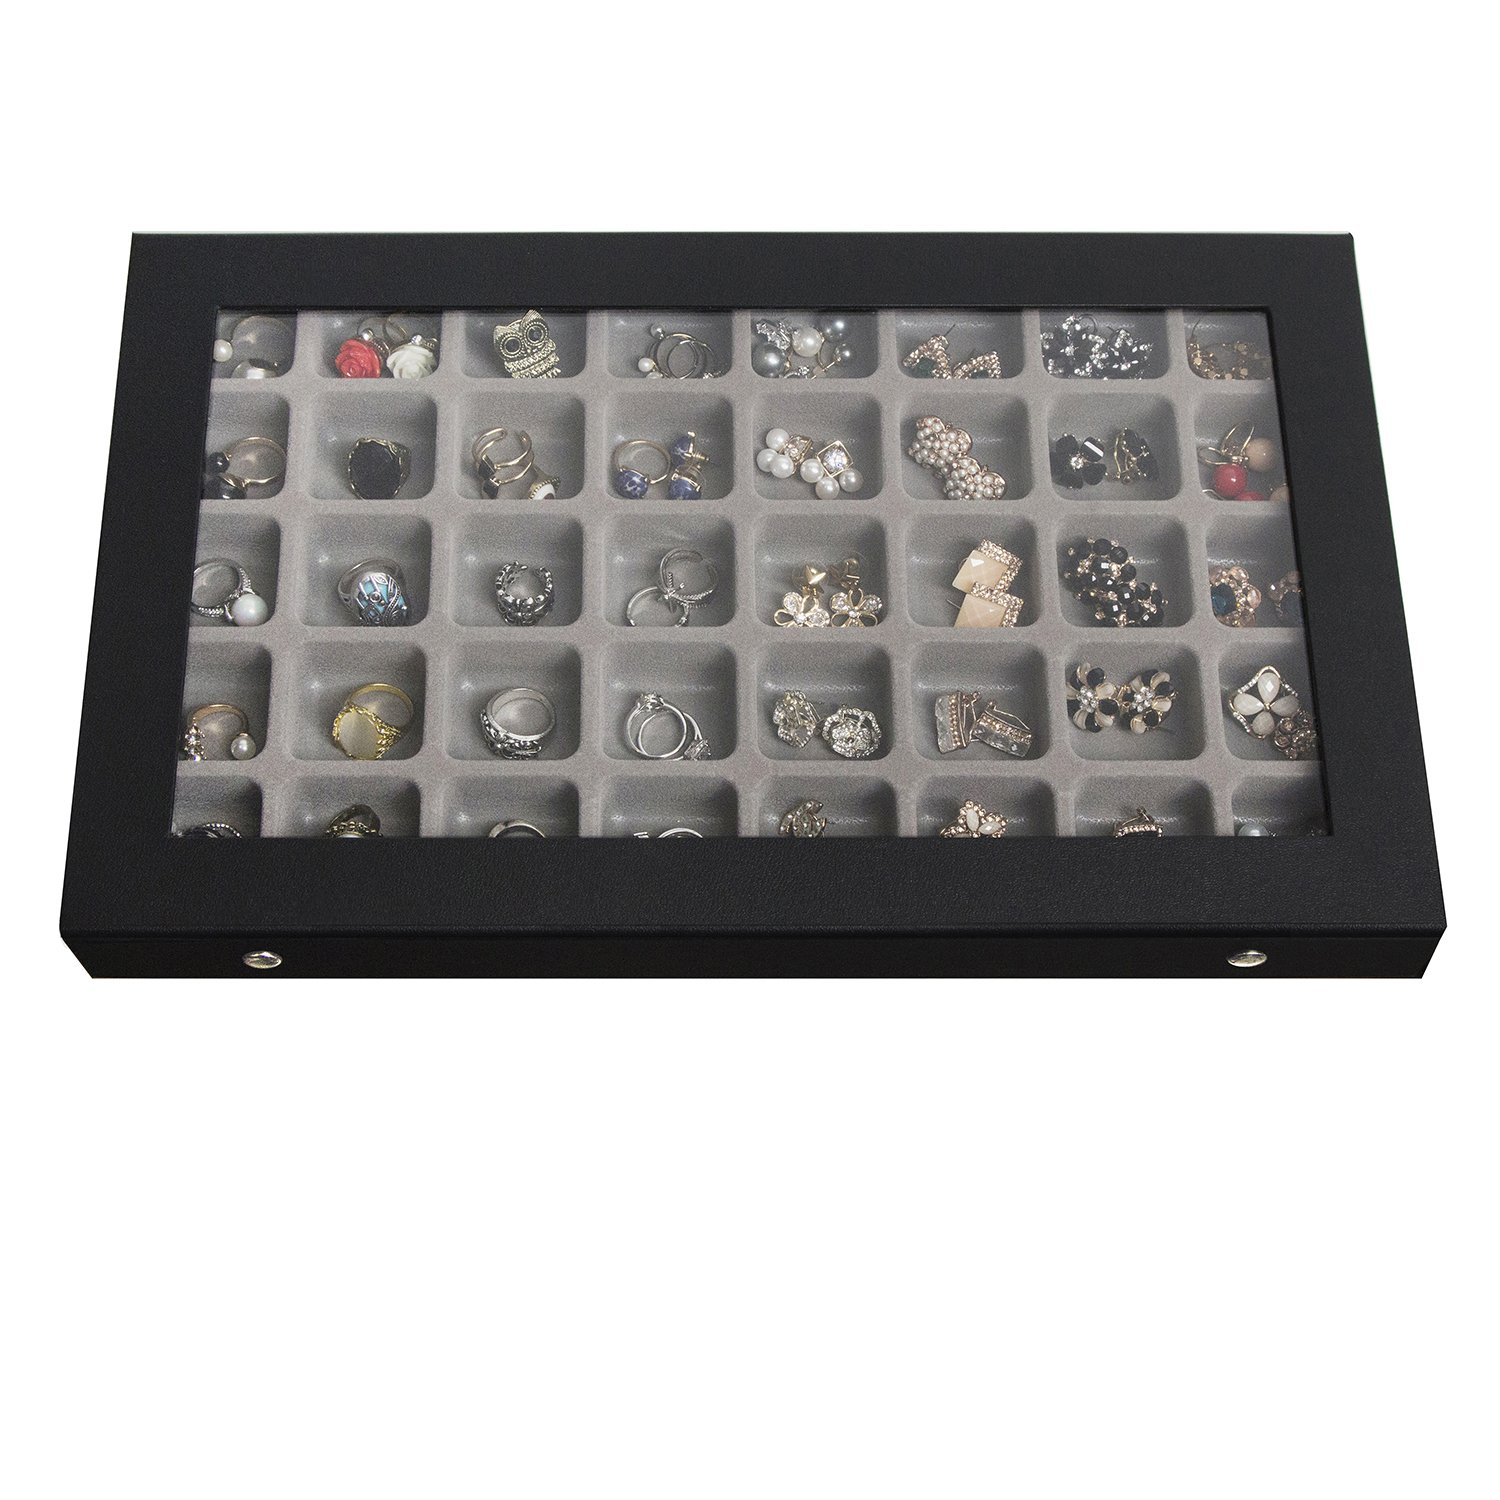 JackCubeDesign 40 Compartments Jewelry Display Tray Showcase Organizer Storage Box Slots Holder for Earring, Ring with Acrylic Cover(Black, 16.97 x 9.7 x 1.65 inches) – :MK333A